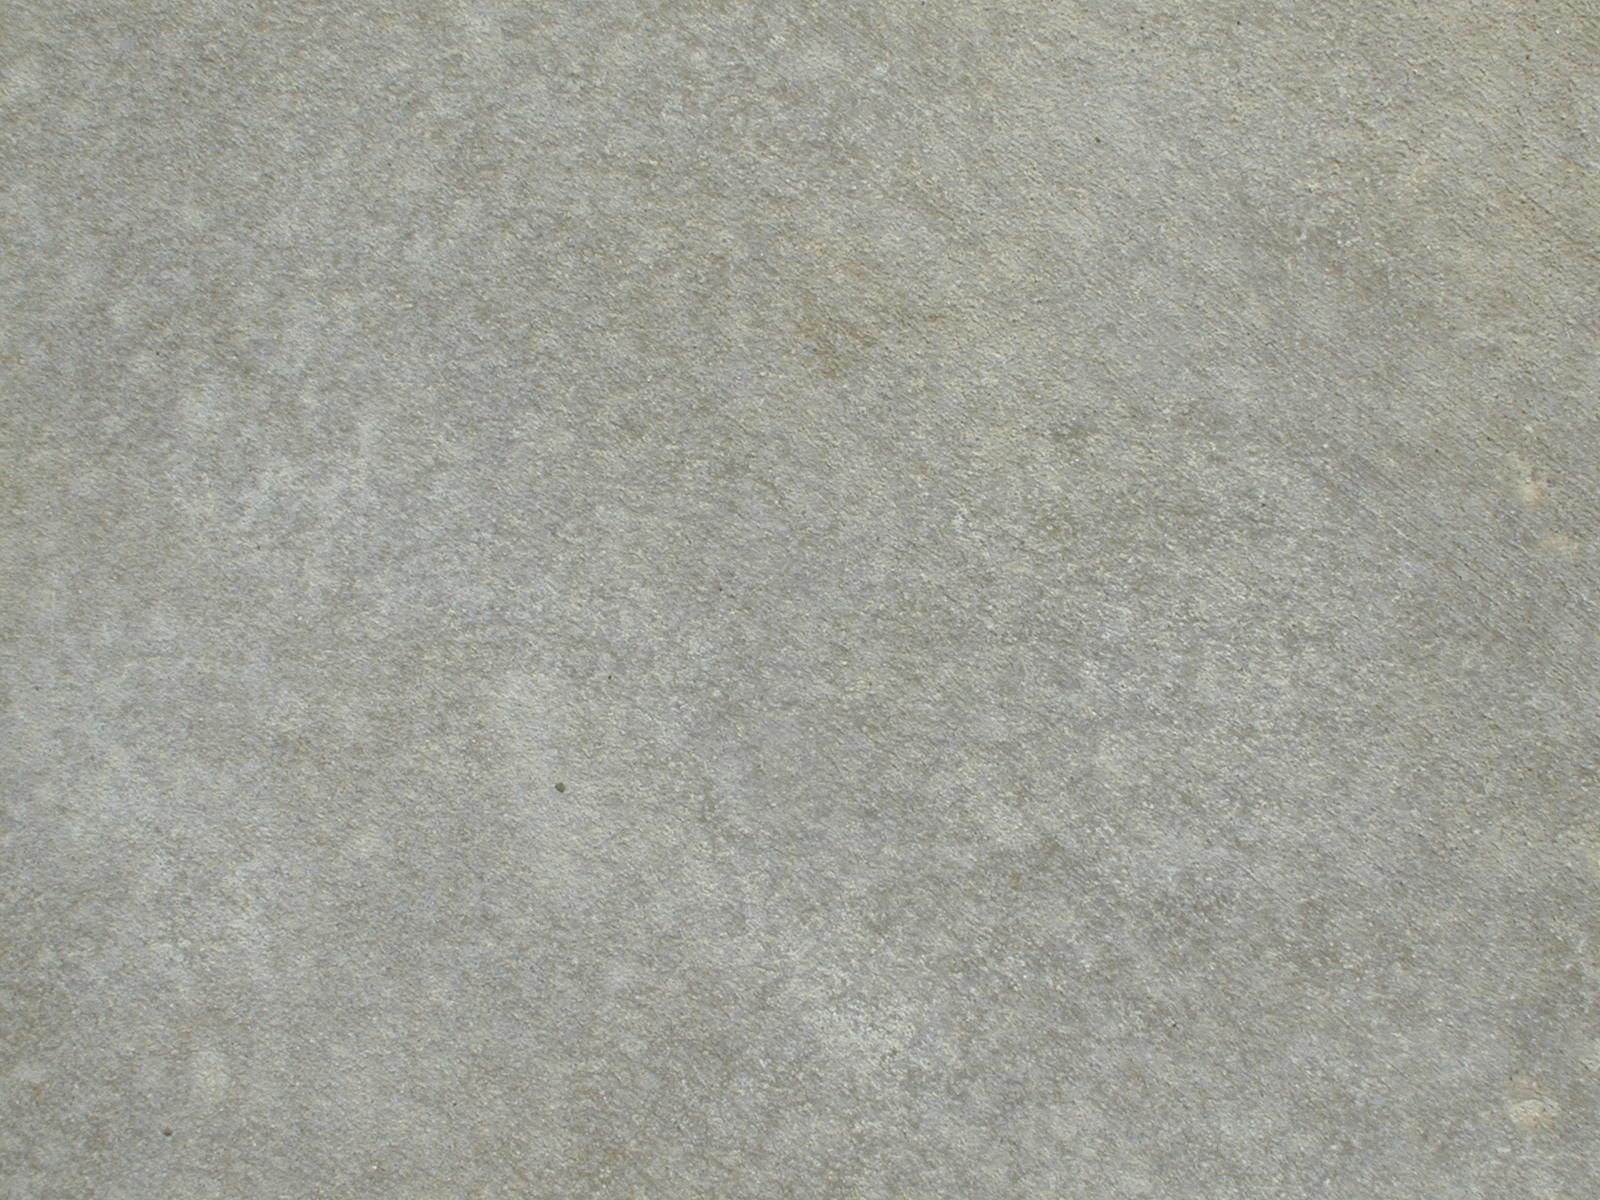 File:Cement texture.jpg - Wikimedia Commons